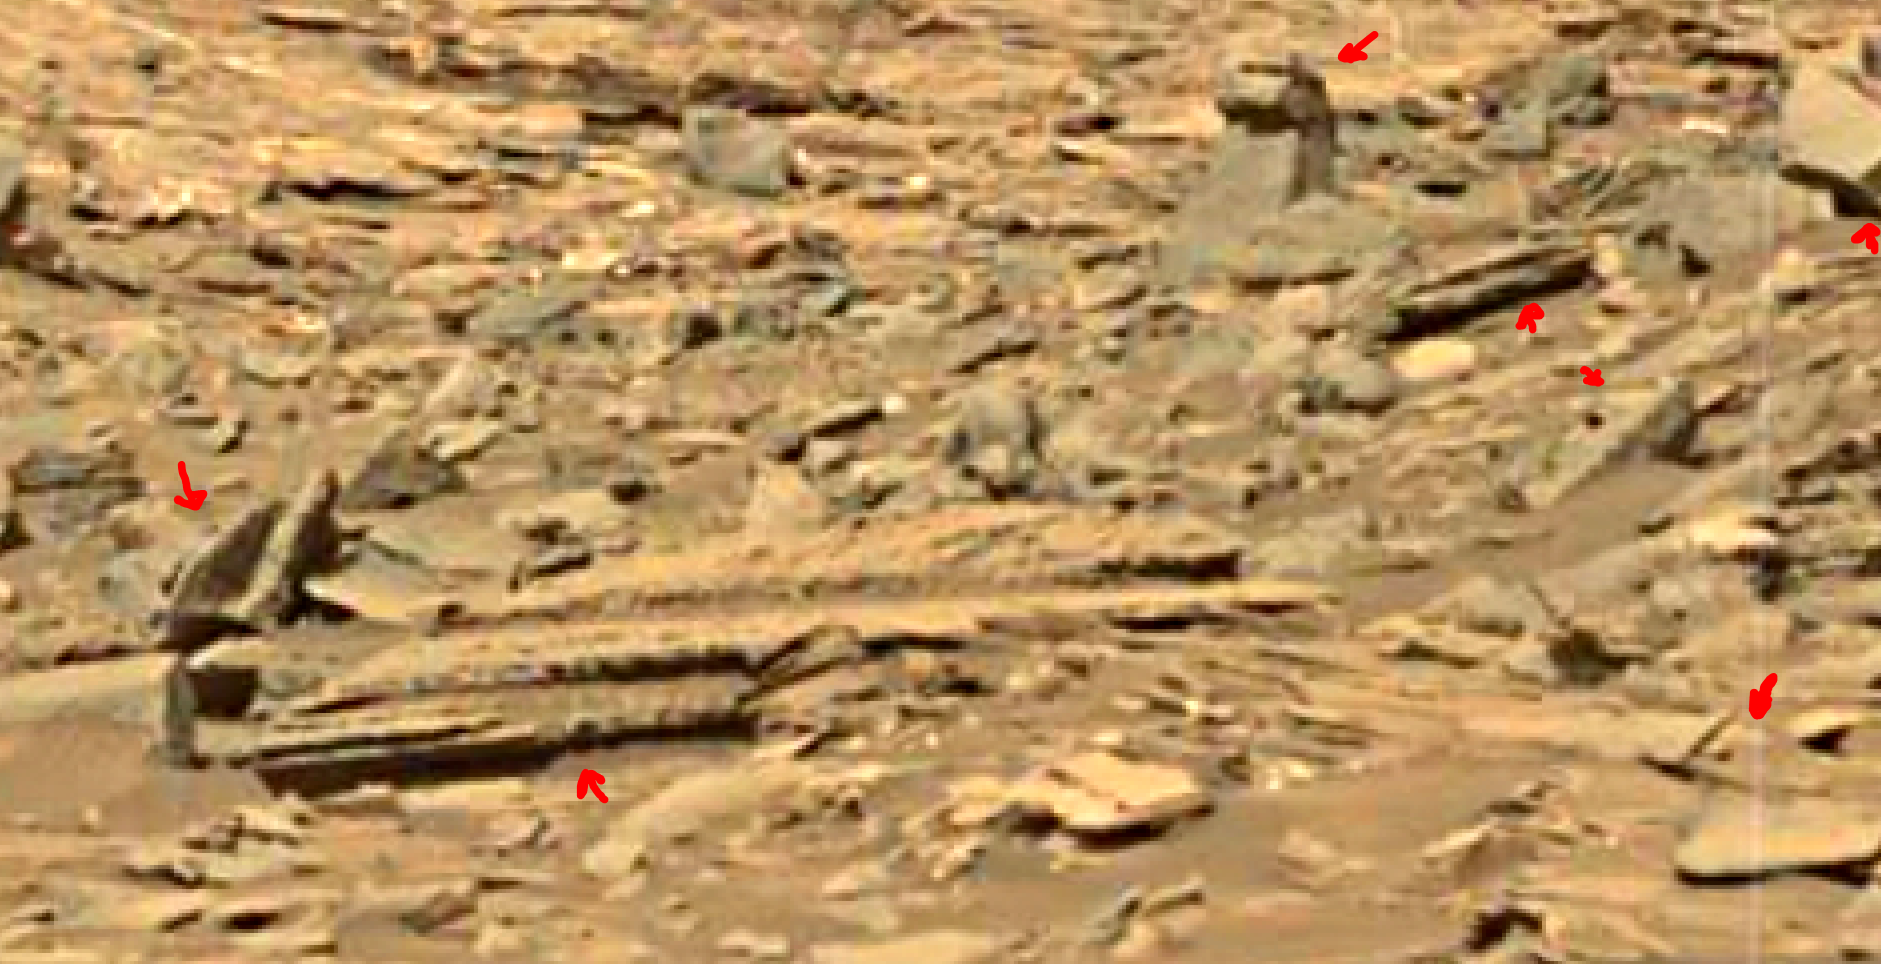 mars-sol-1451-anomaly-artifacts-5a-was-life-on-mars